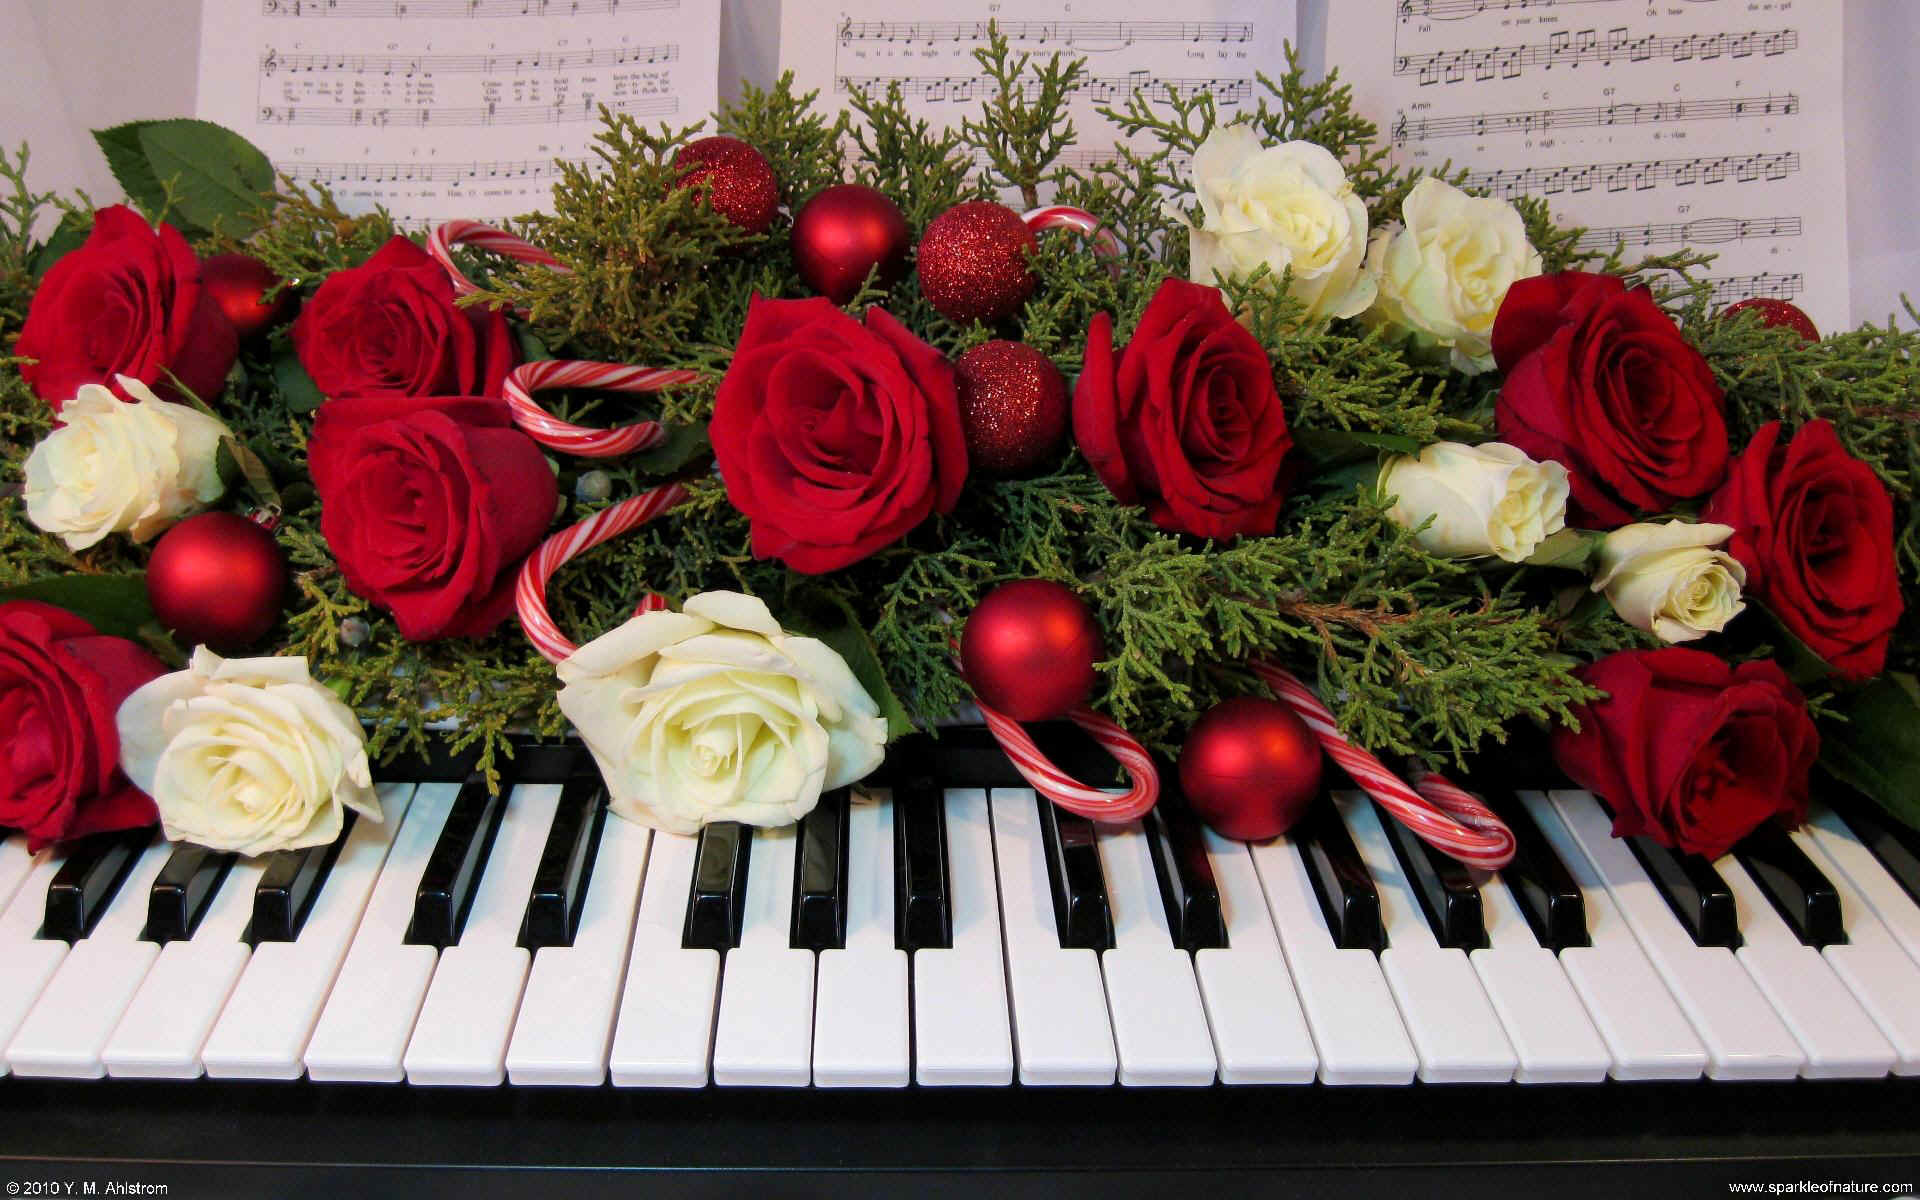 christmas piano wallpaper - photo #7